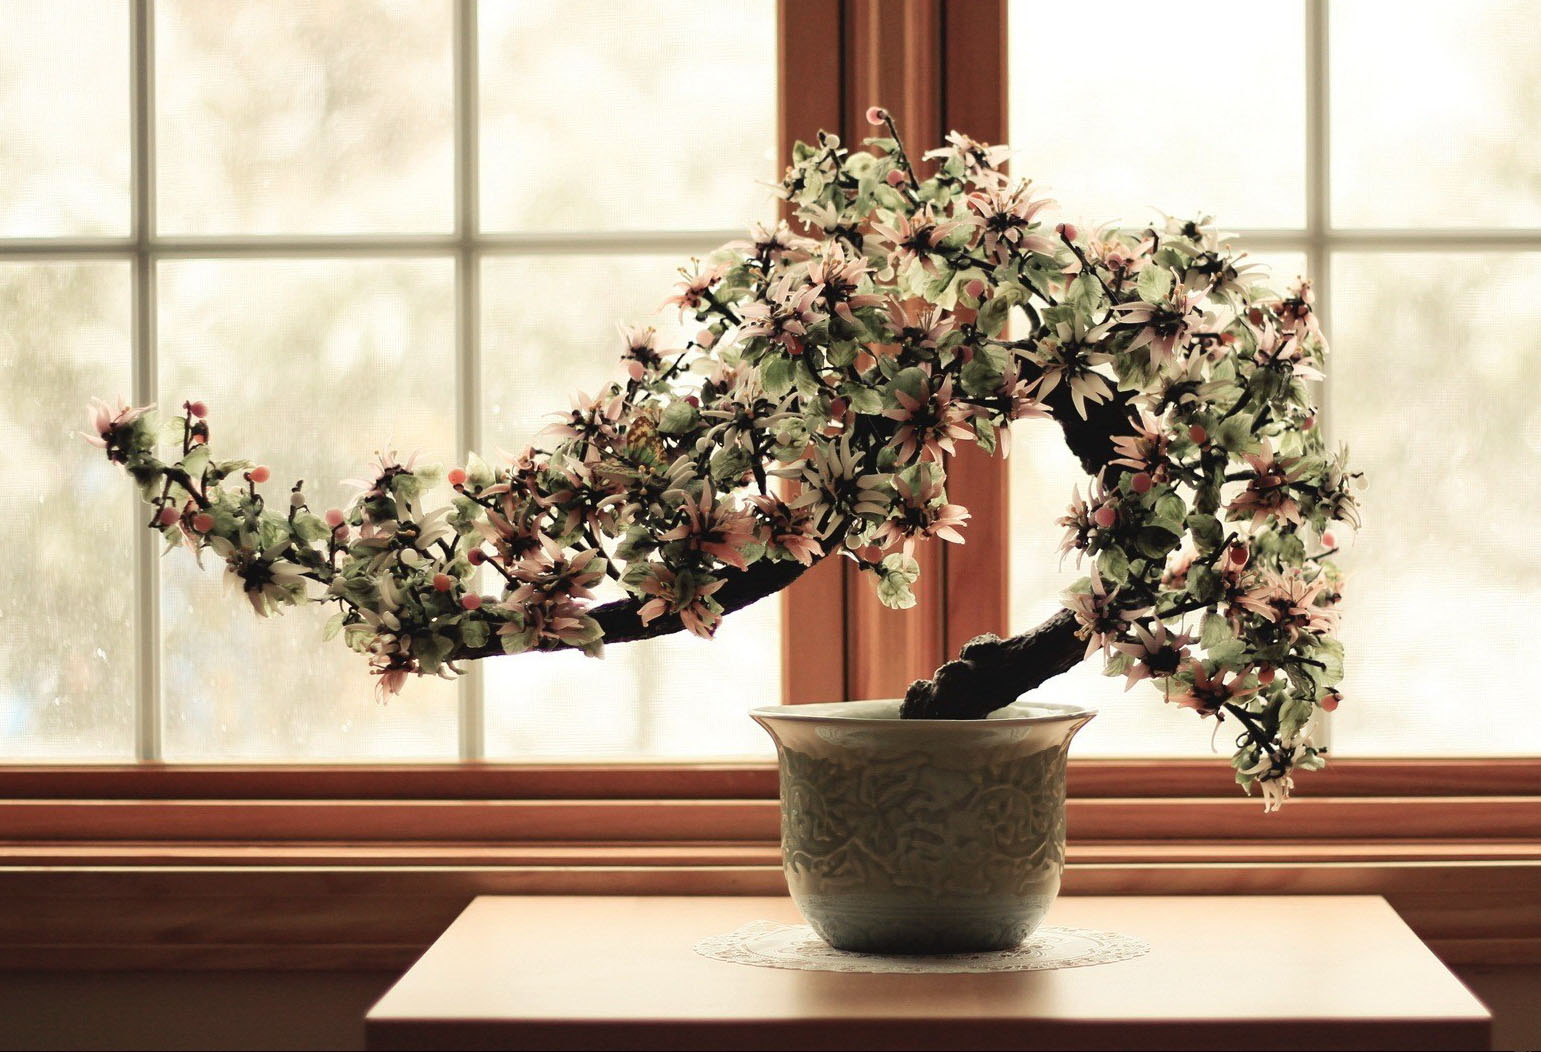 Come coltivare un bonsai e imparare l 39 arte ibonsai for Piante per bonsai